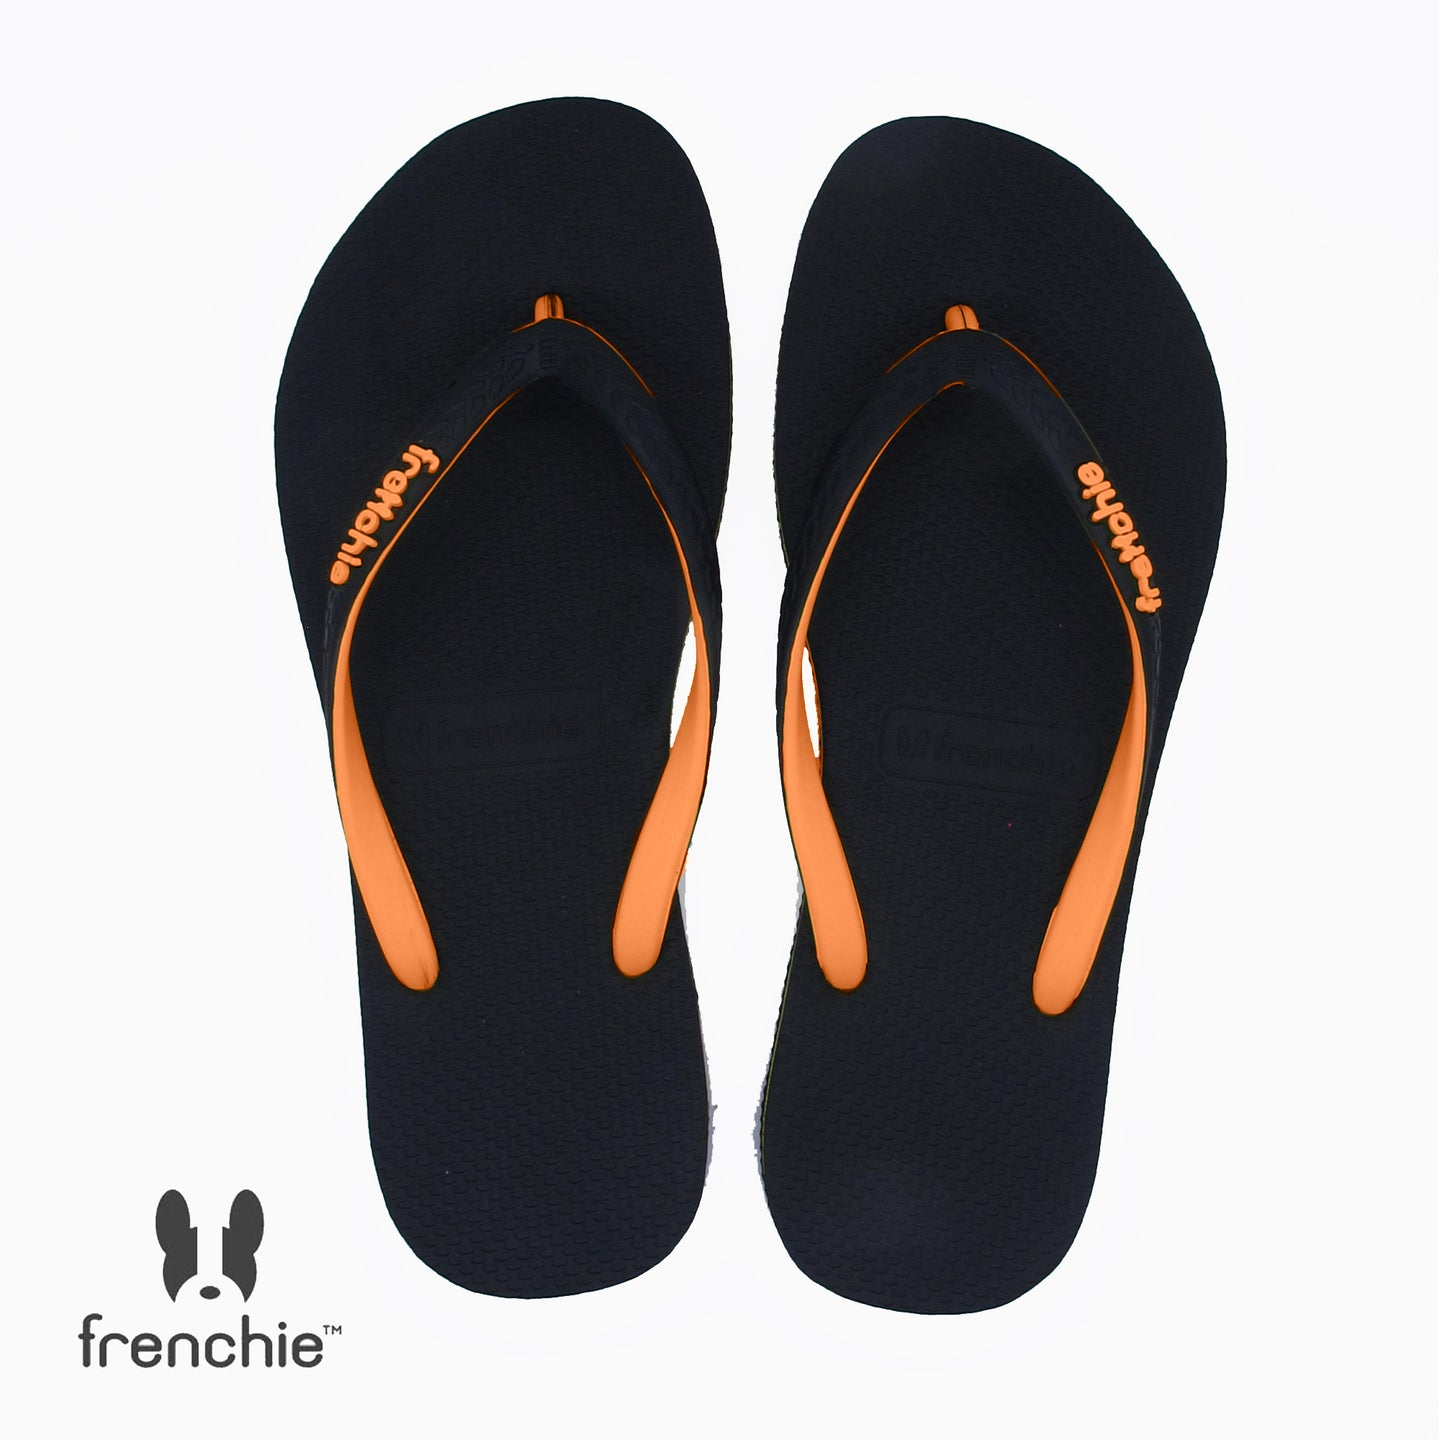 (Stock Updated) Frenchie Sandal Jepit Wanita Onyx Slim Black/Orange/Orange SOS04